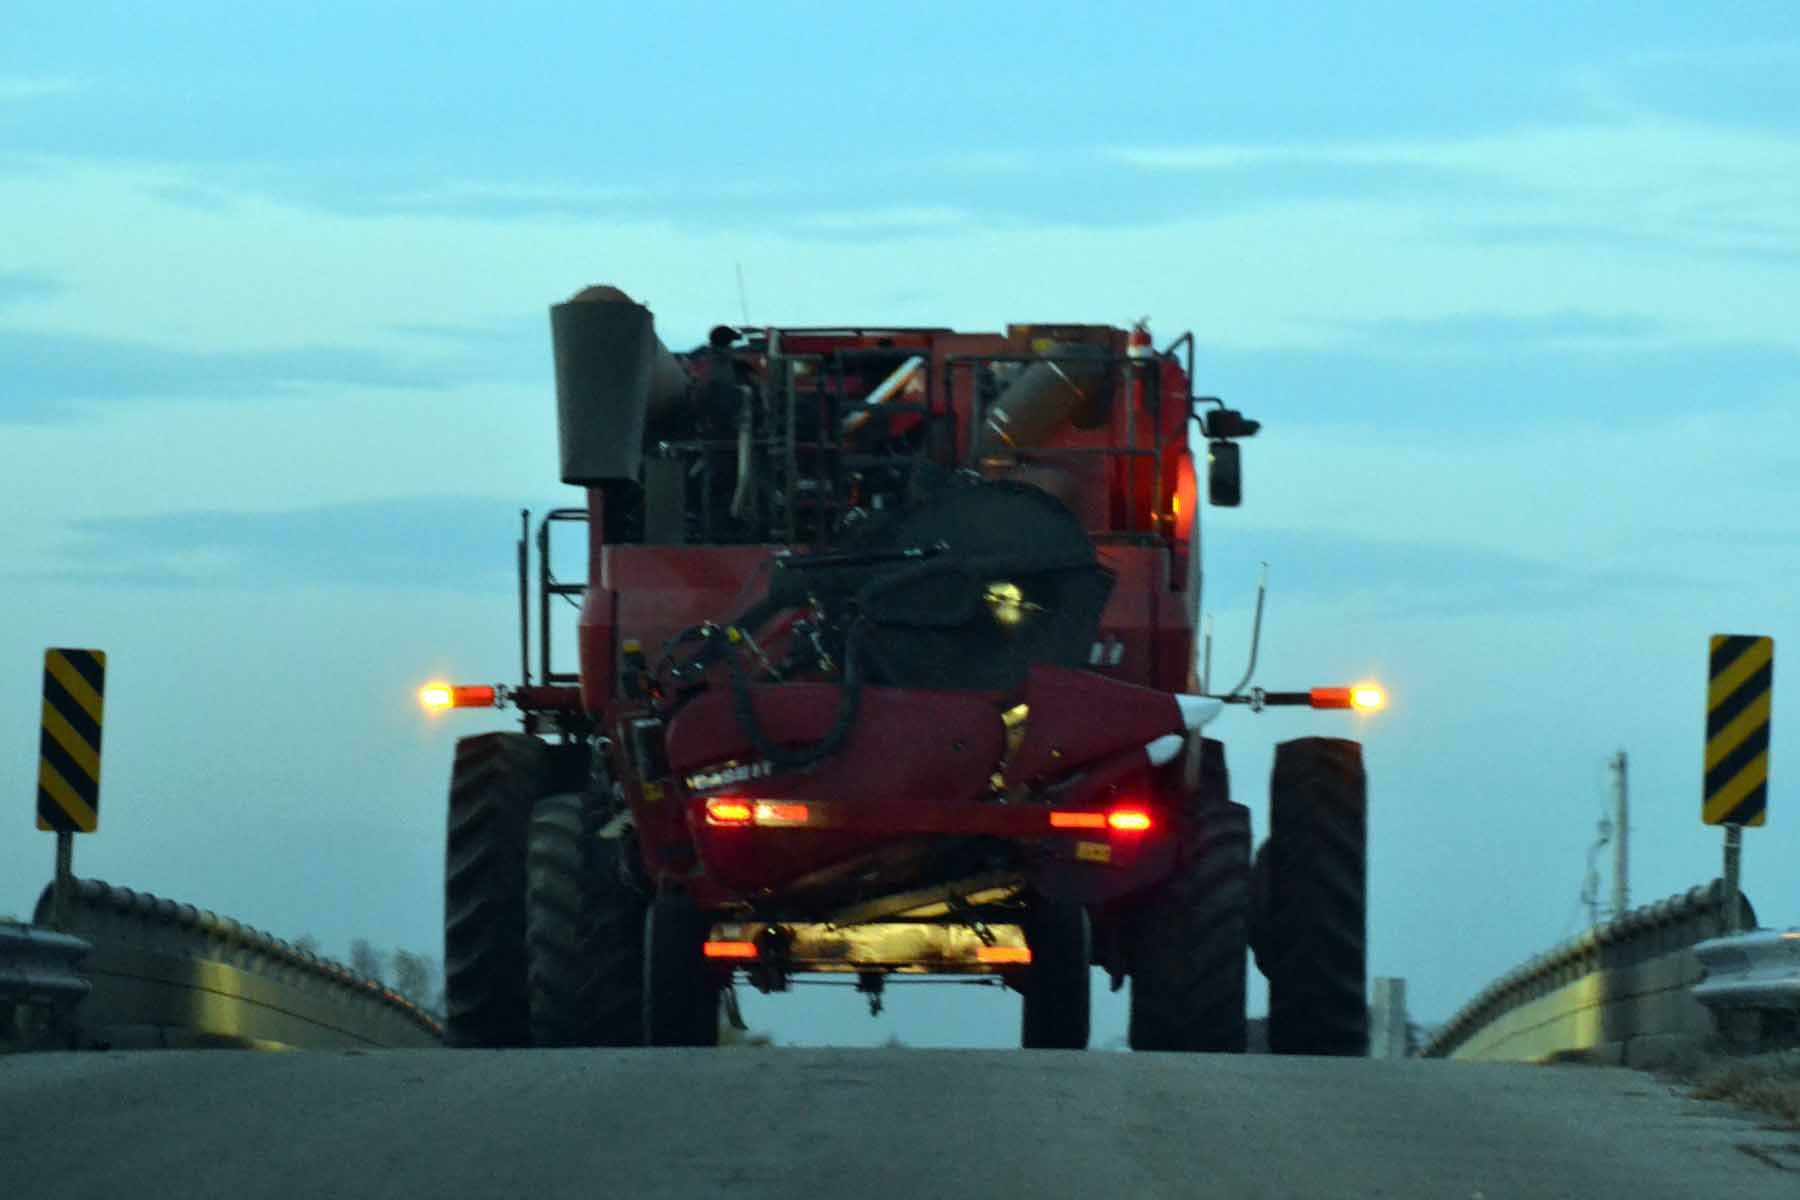 A color photo of a John Deere combine operted crossing a bridge during hours of darkness.